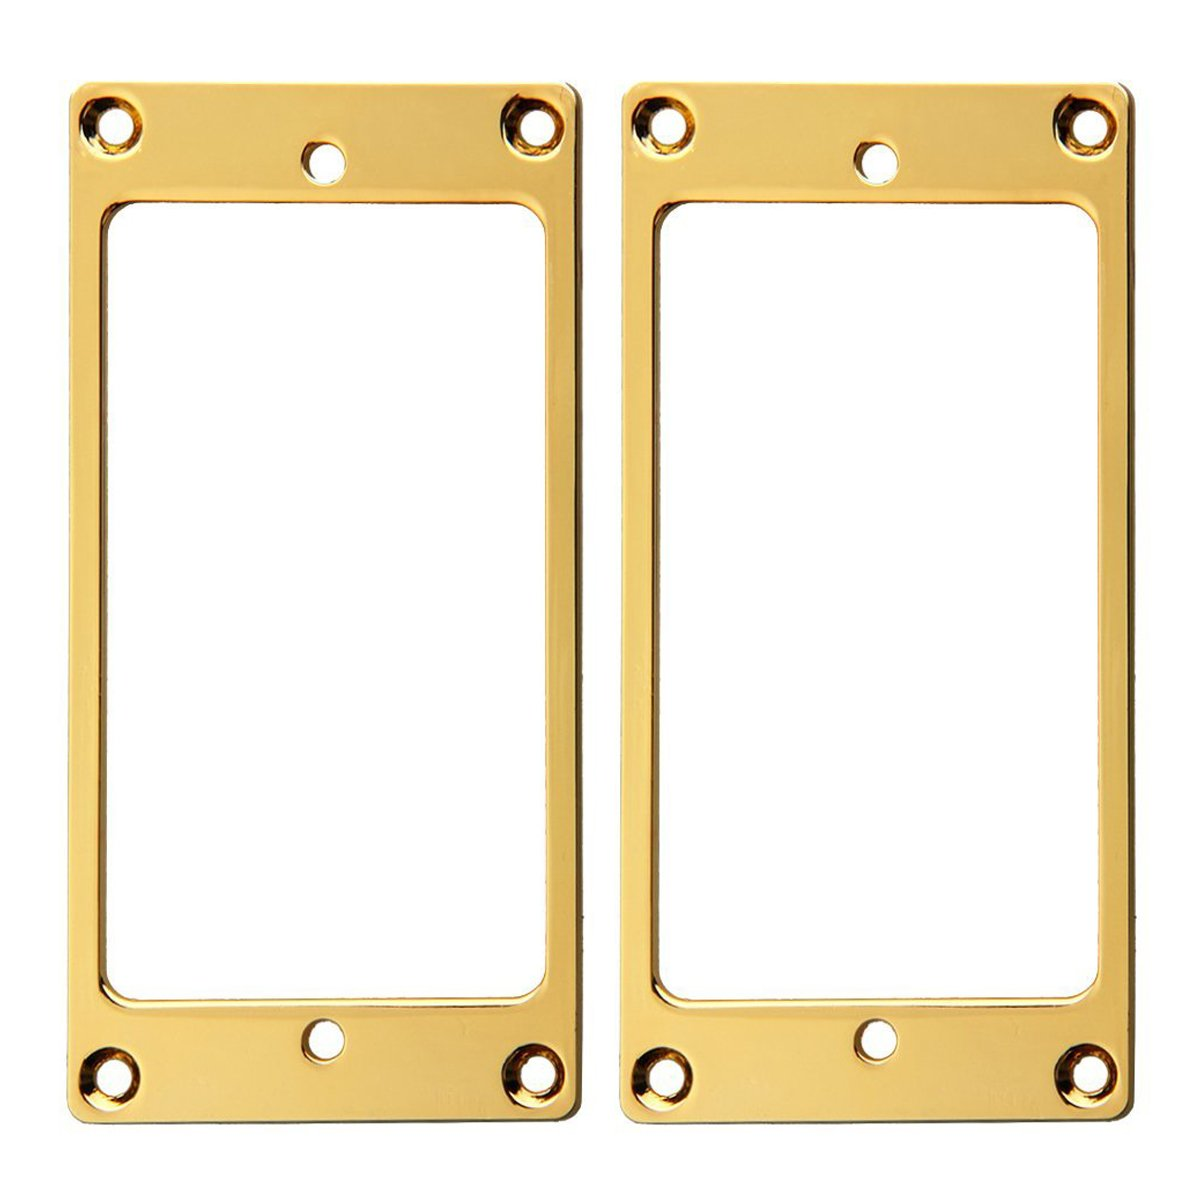 Musiclily Metal Flat Electric Guitar Humbucker Pickup Mounting Frame Ring, Chrome (Pack of 2) MX0643-2